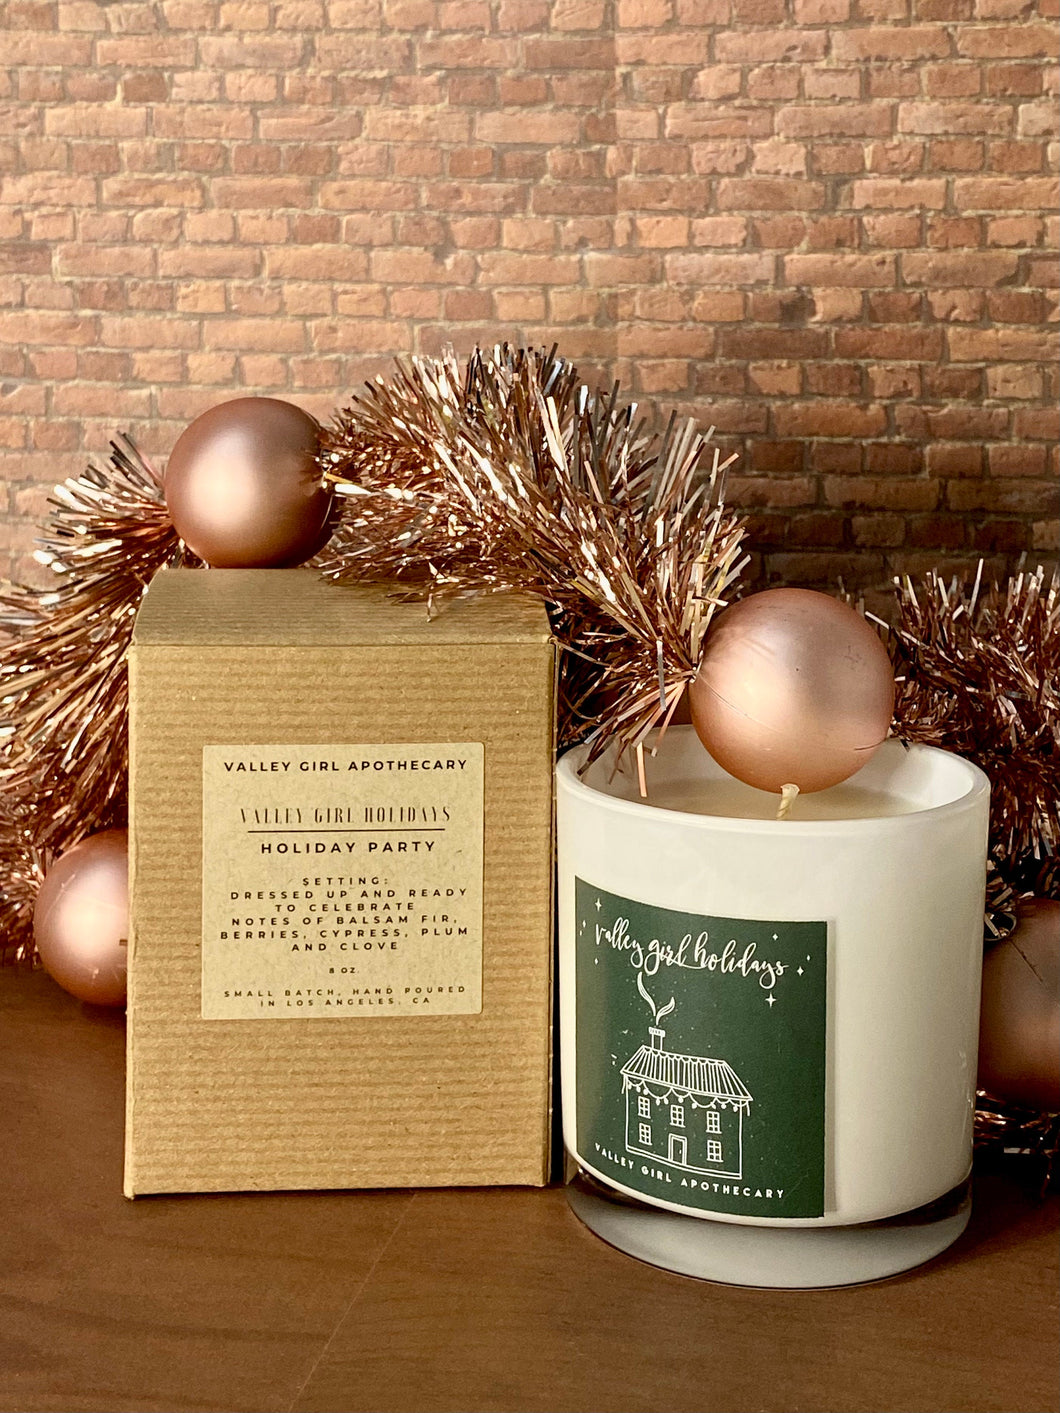 Holiday Scented Soy Candle - Holiday Party - clove, plum, berries, cypress, balsam fir